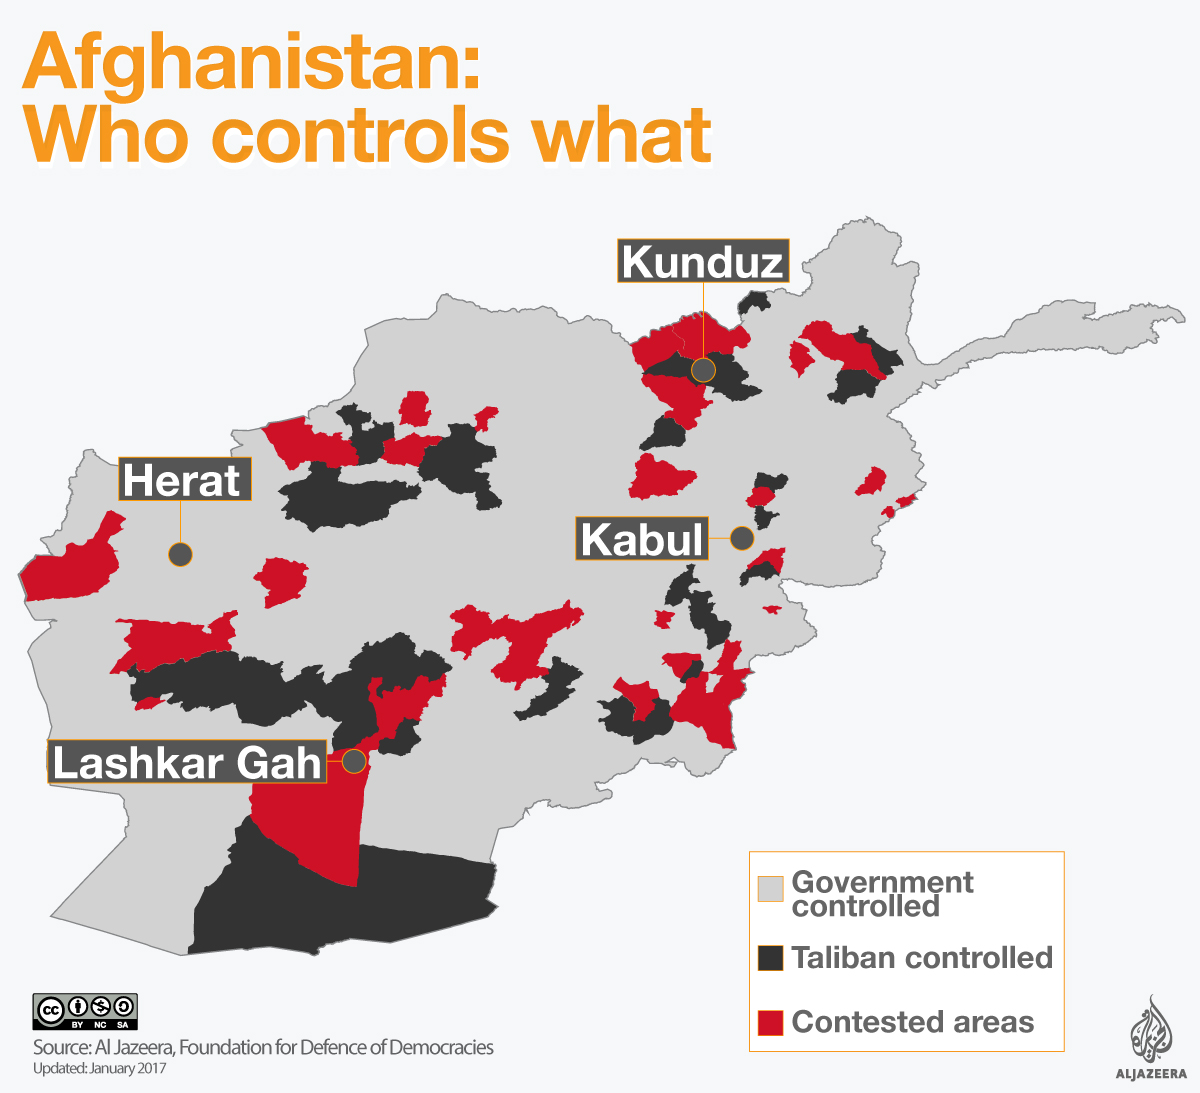 Afghanistan peace process hurdles and prospects part 1 young part 2 afghanistan a war torn country yearns for peace life in afghanistan has been paralyzed its economy is in tatters almost ninety percent of its gumiabroncs Choice Image